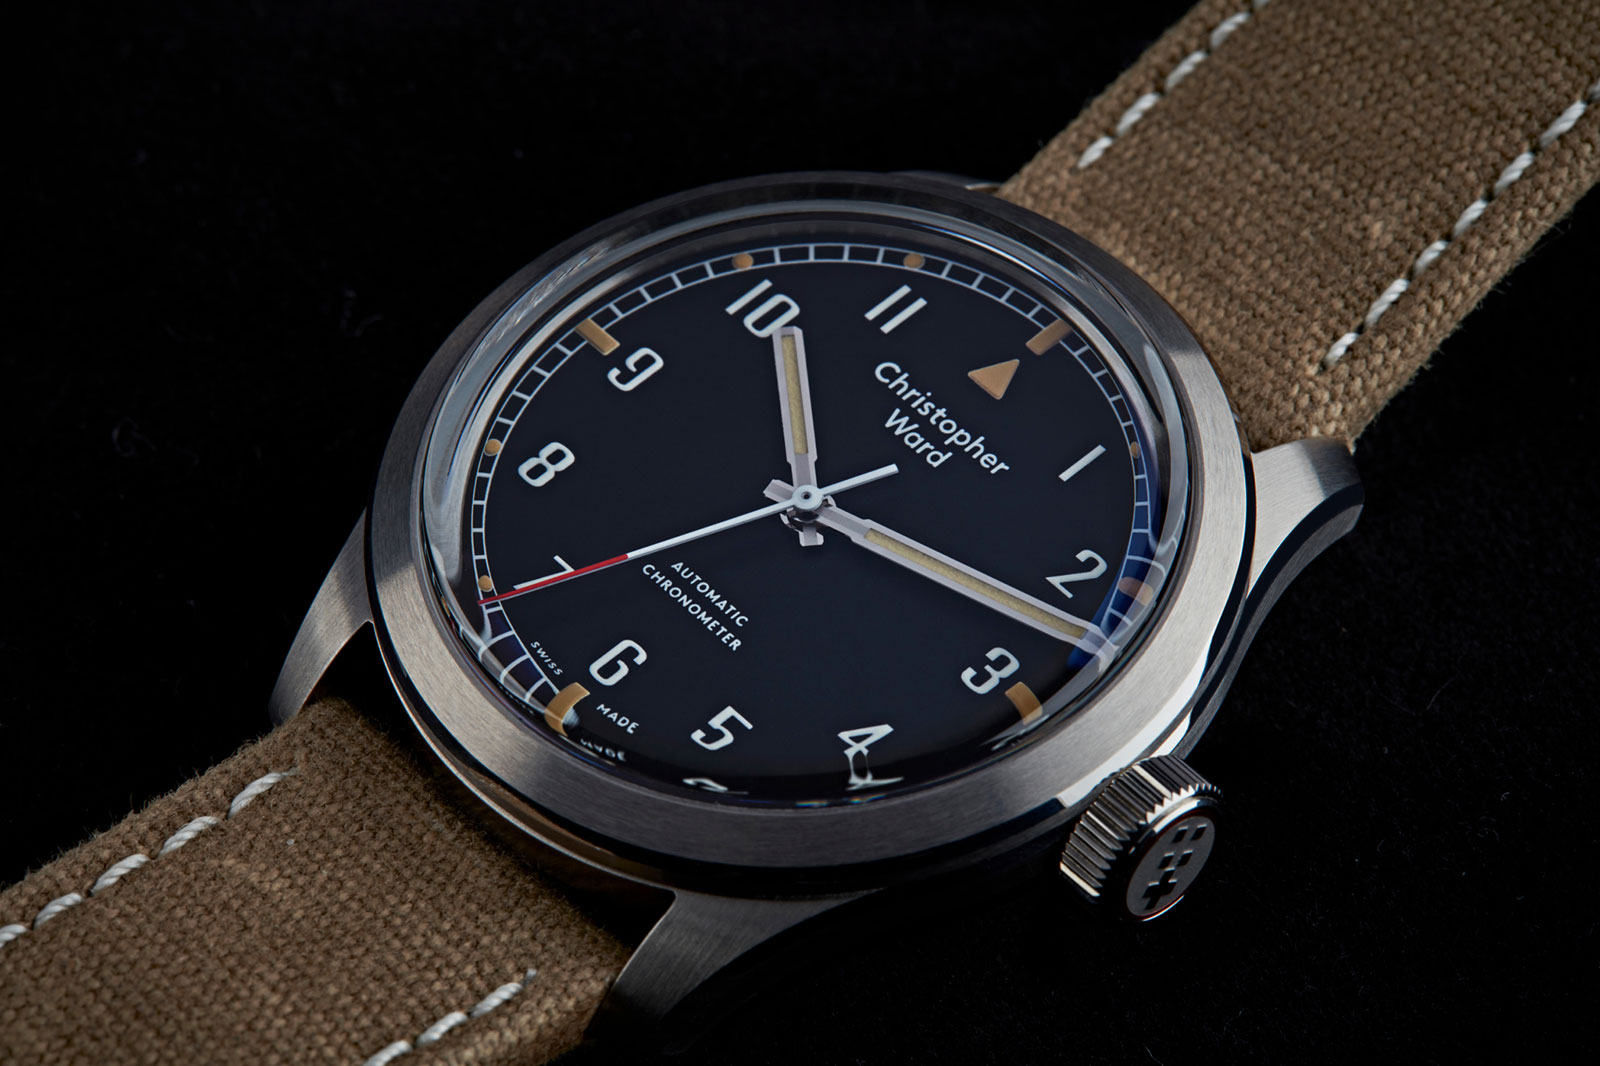 christopher ward C65 Sandhurst 2